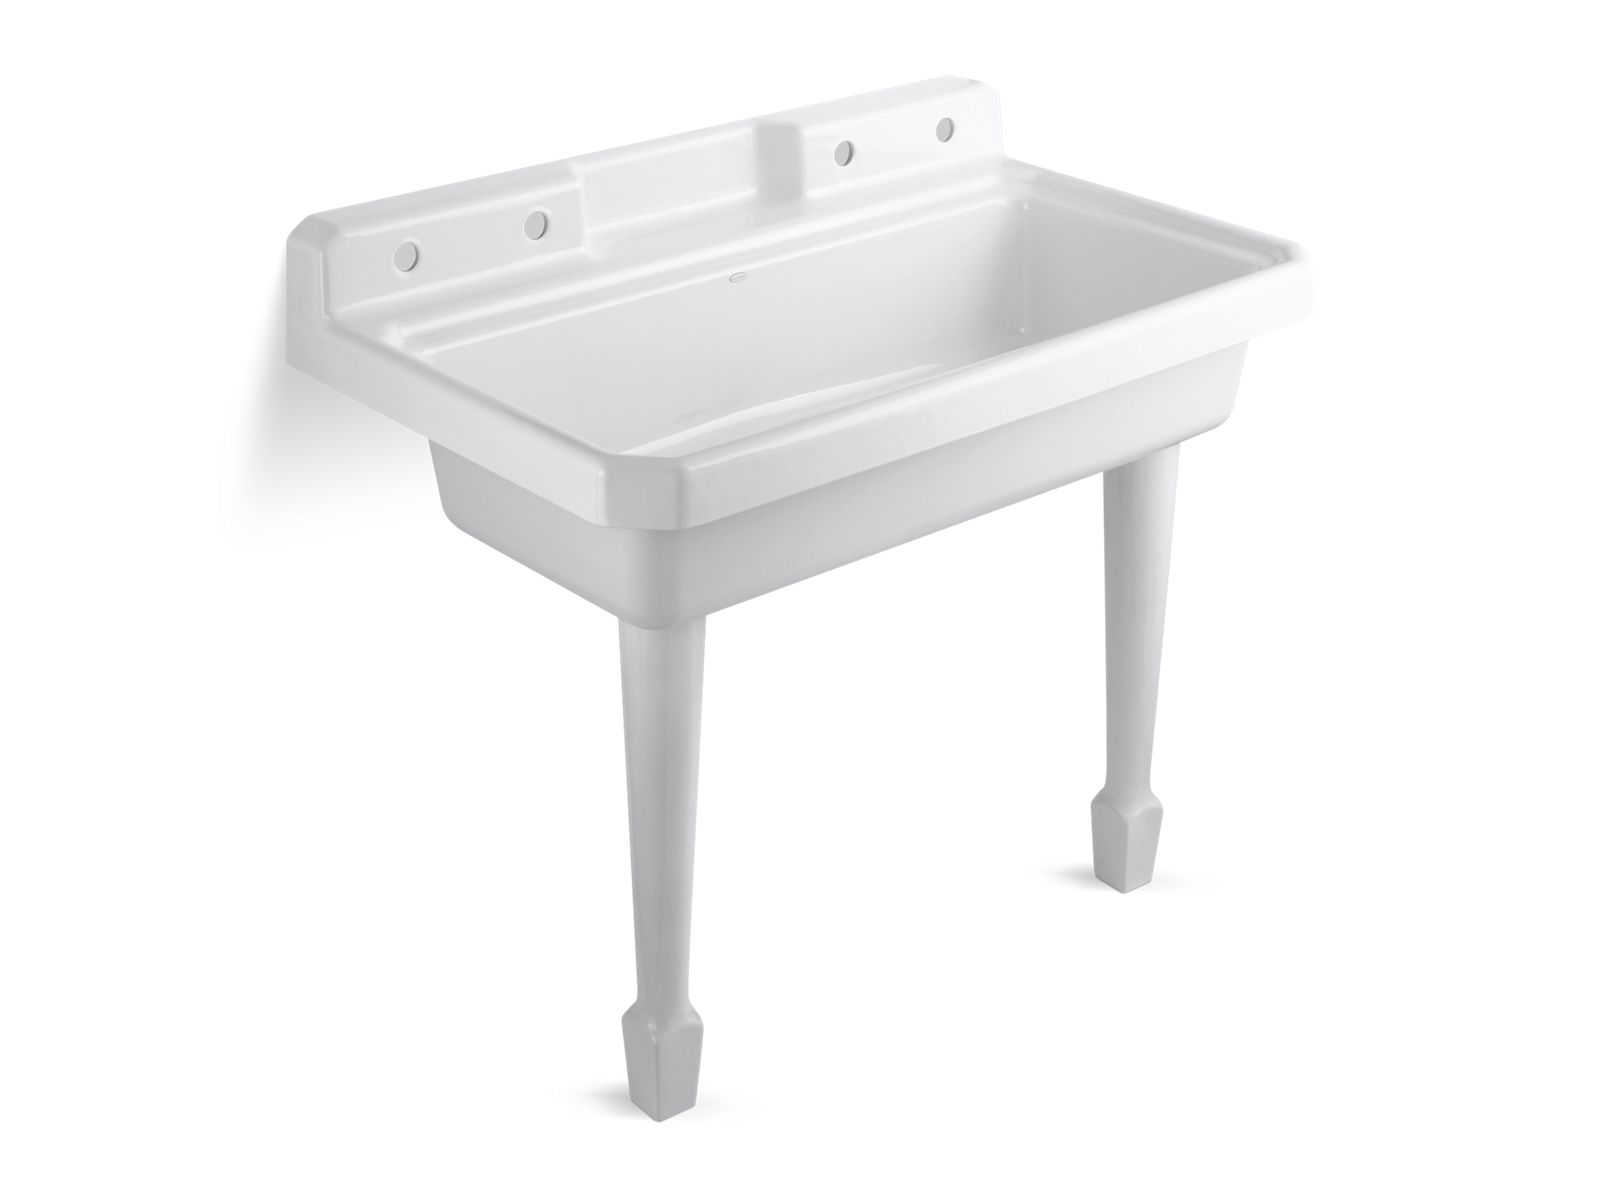 Harborview Utility Sink With Four Faucet Holes | K 6607 4 | KOHLER